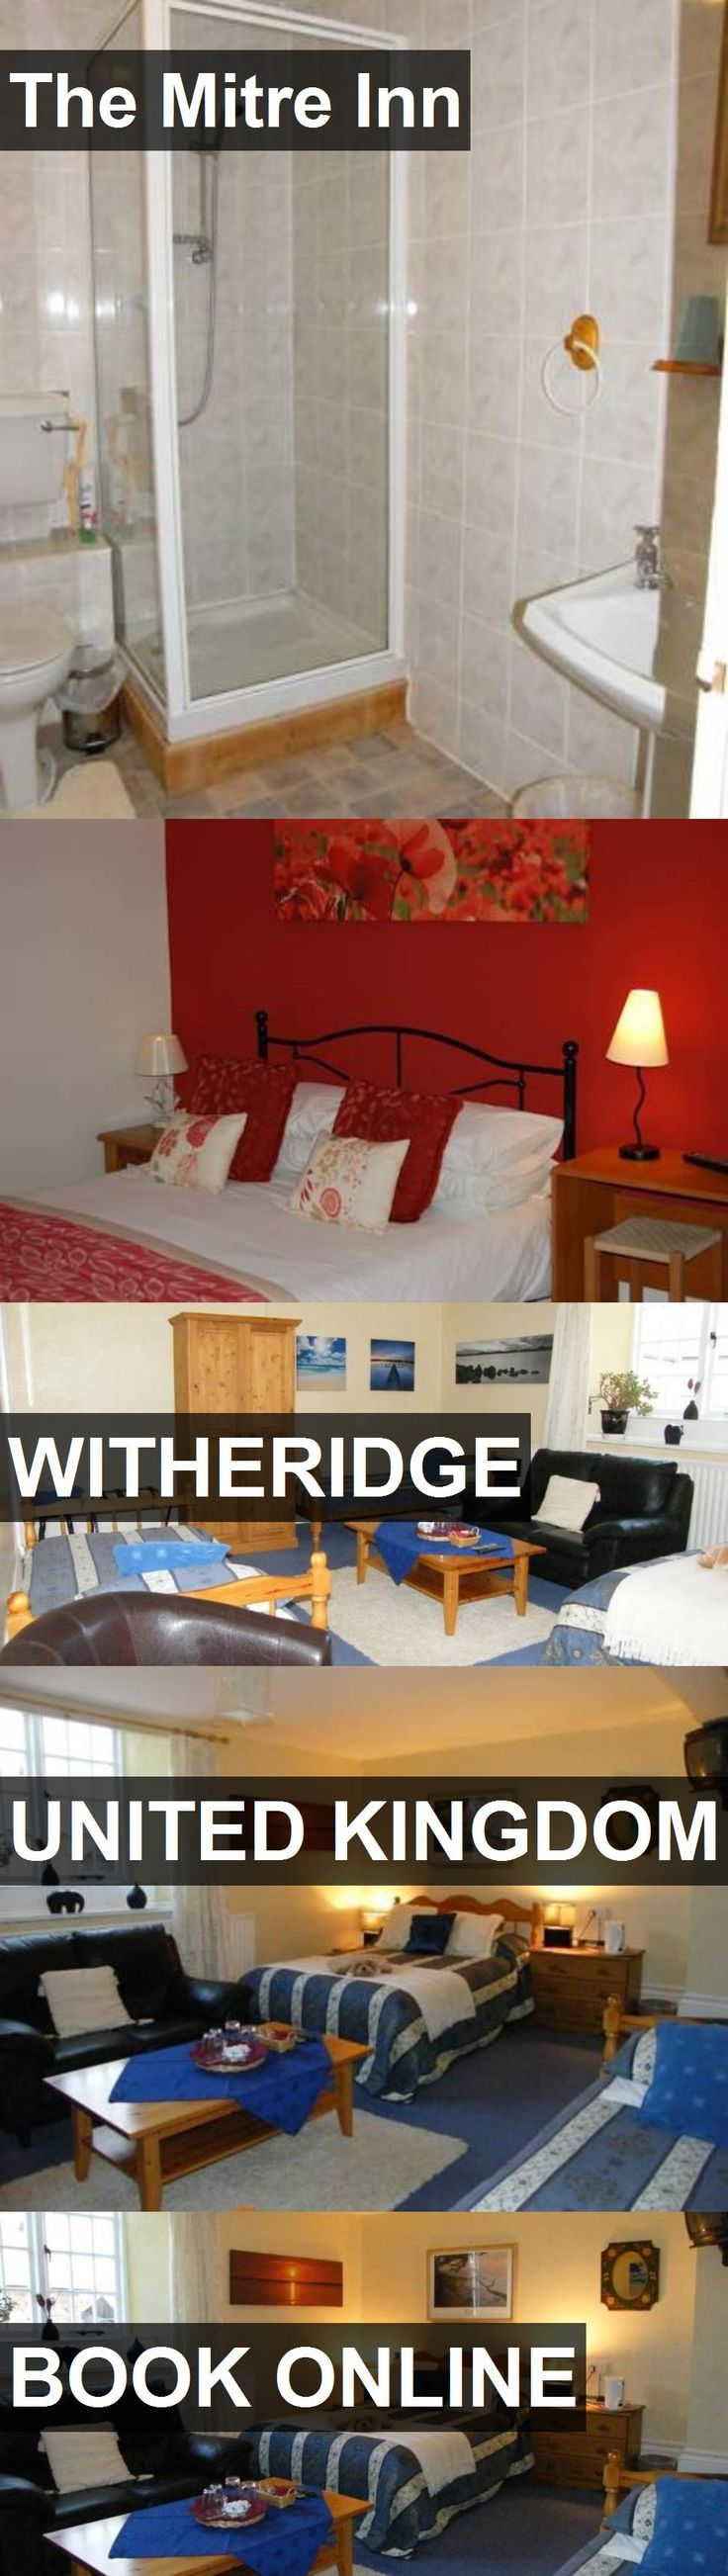 Hotel The Mitre Inn in Witheridge, United Kingdom. For more information, photos, reviews and best prices please follow the link. #UnitedKingdom #Witheridge #travel #vacation #hotel